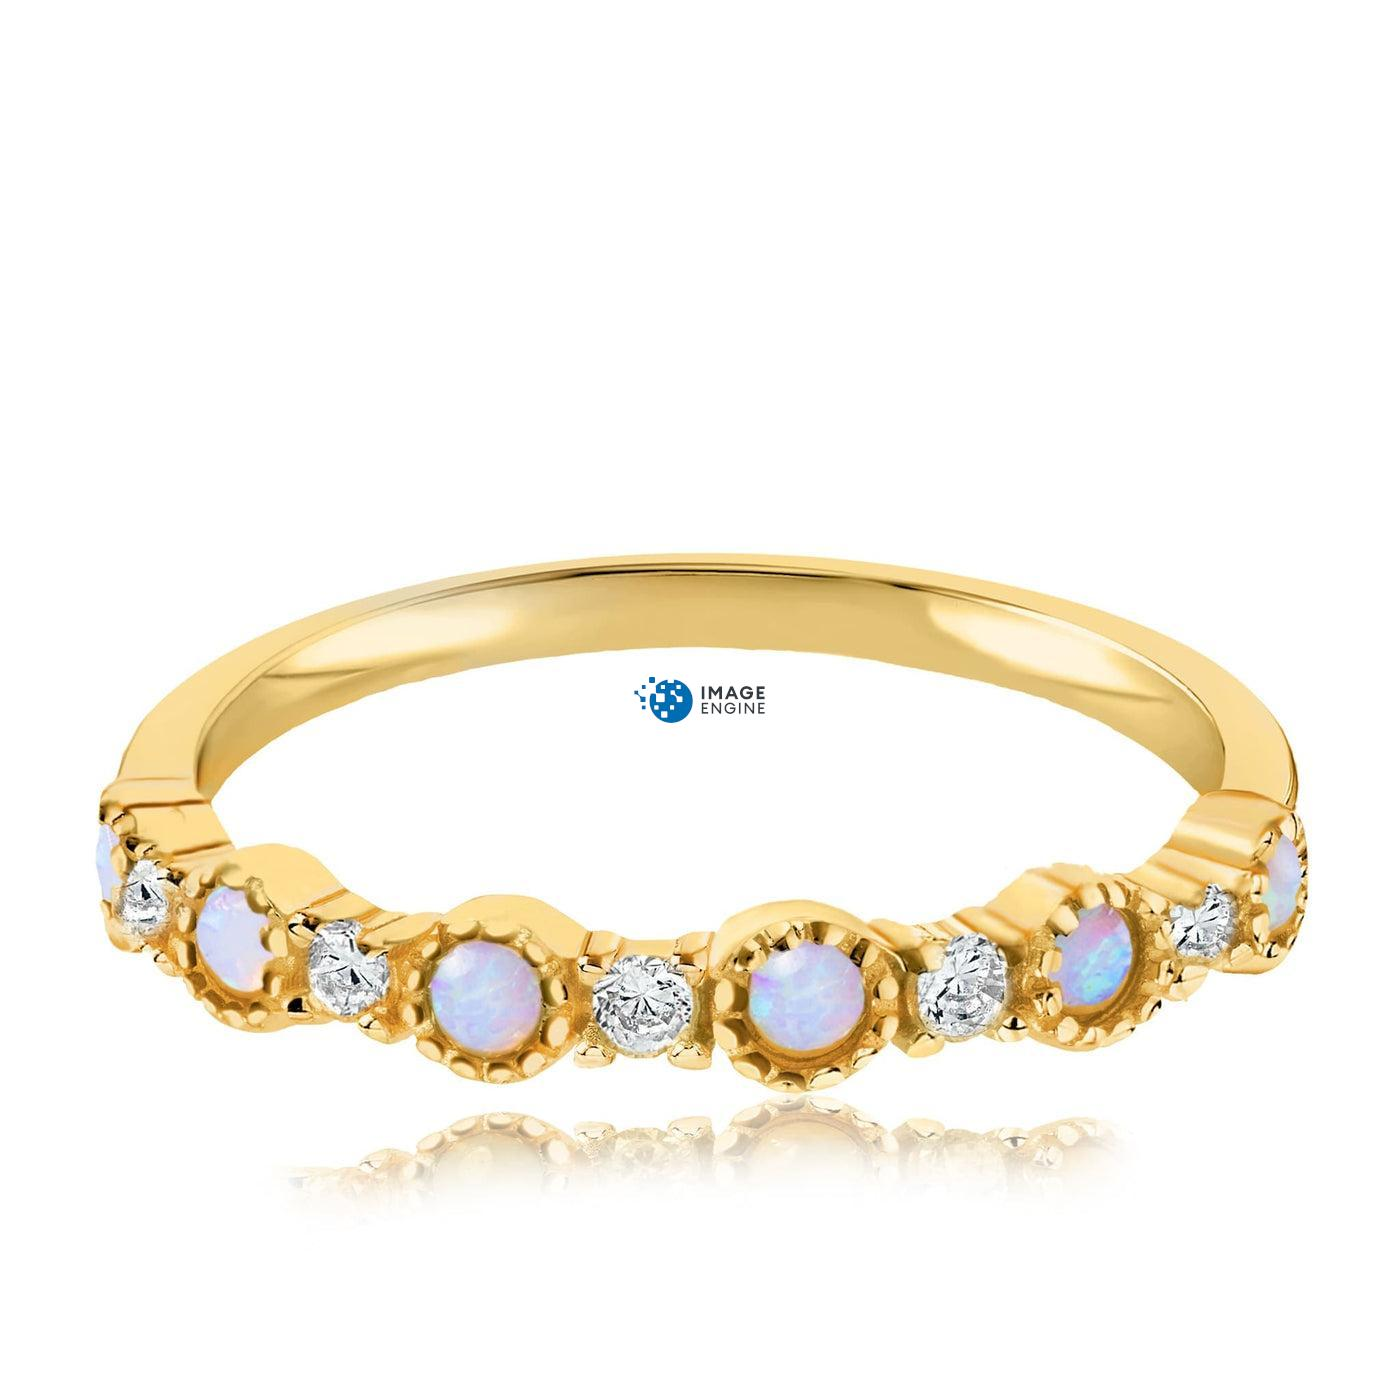 Debra Dots Opal Ring - Front View Facing Down - 18K Yellow Gold Vermeil